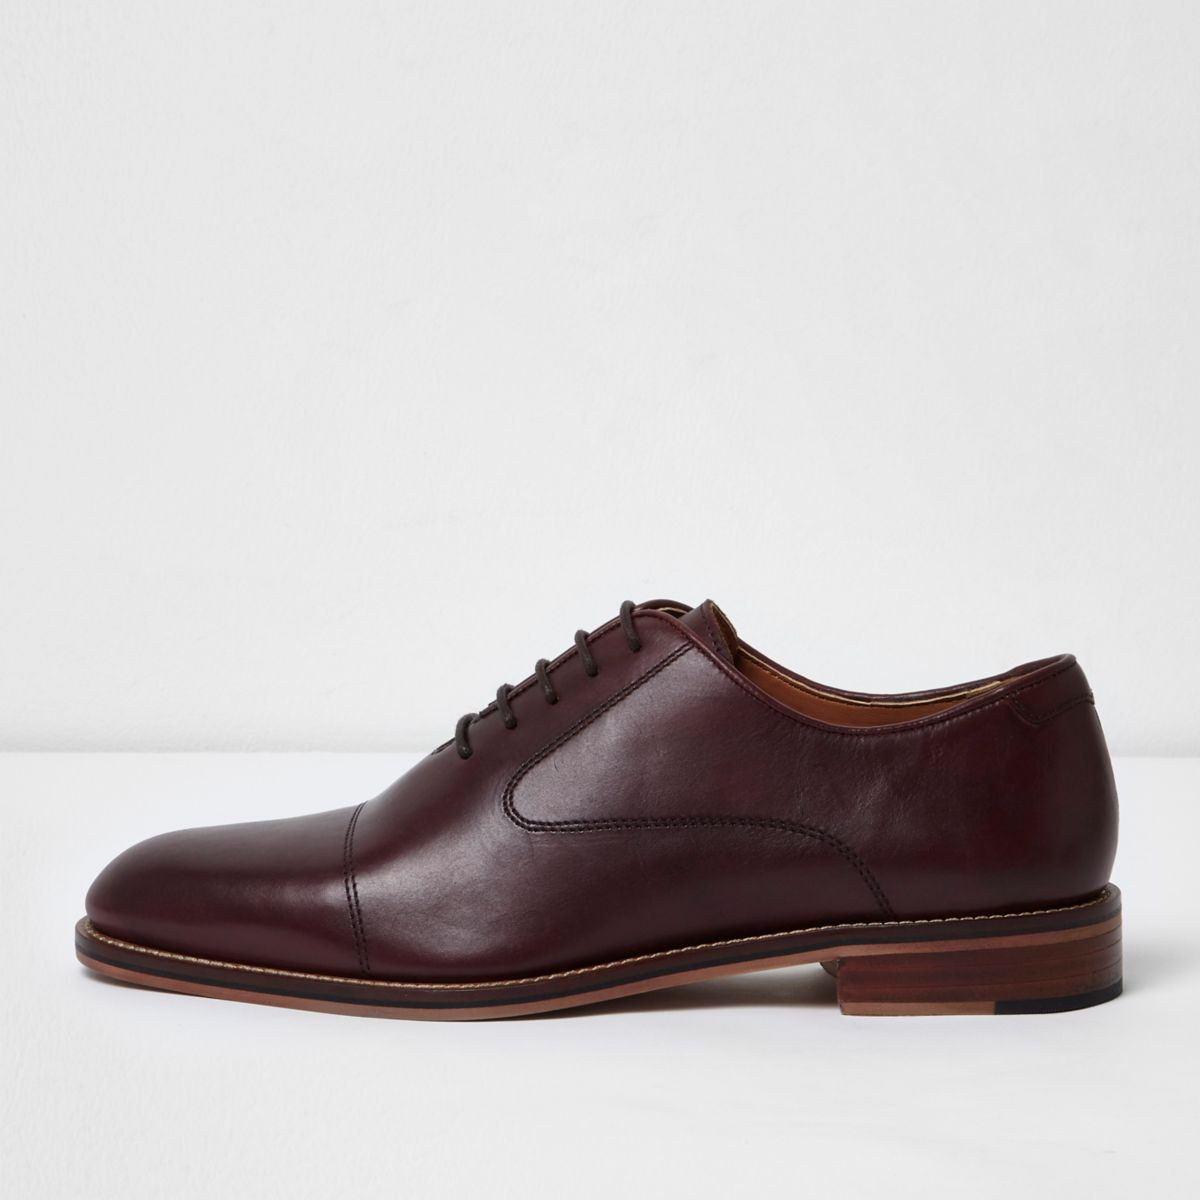 Dark red lace-up Oxford shoes